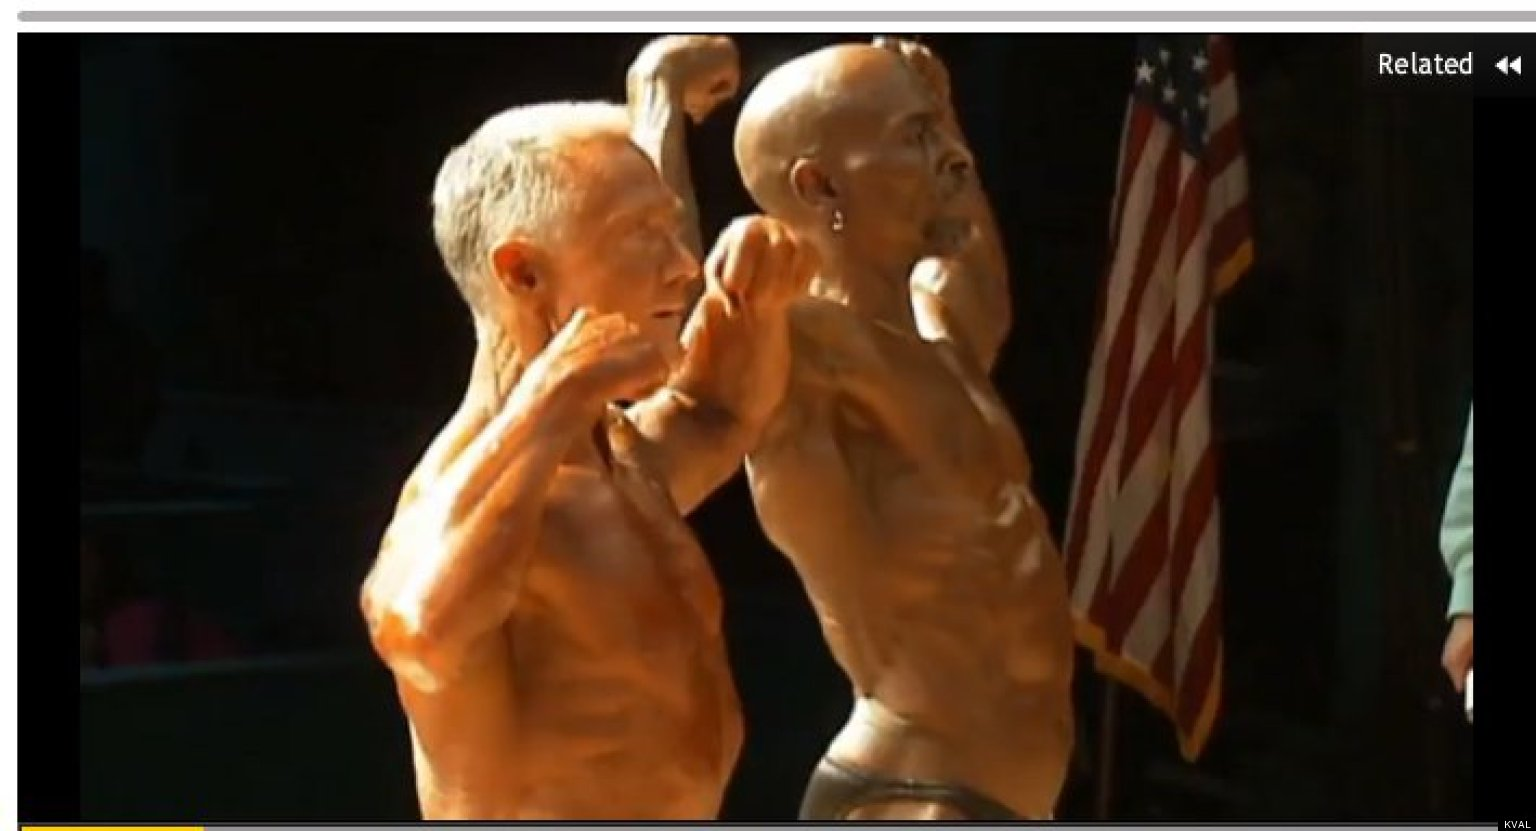 Meet Felton Campbell And Mike Huard, Bodybuilding Grandpas